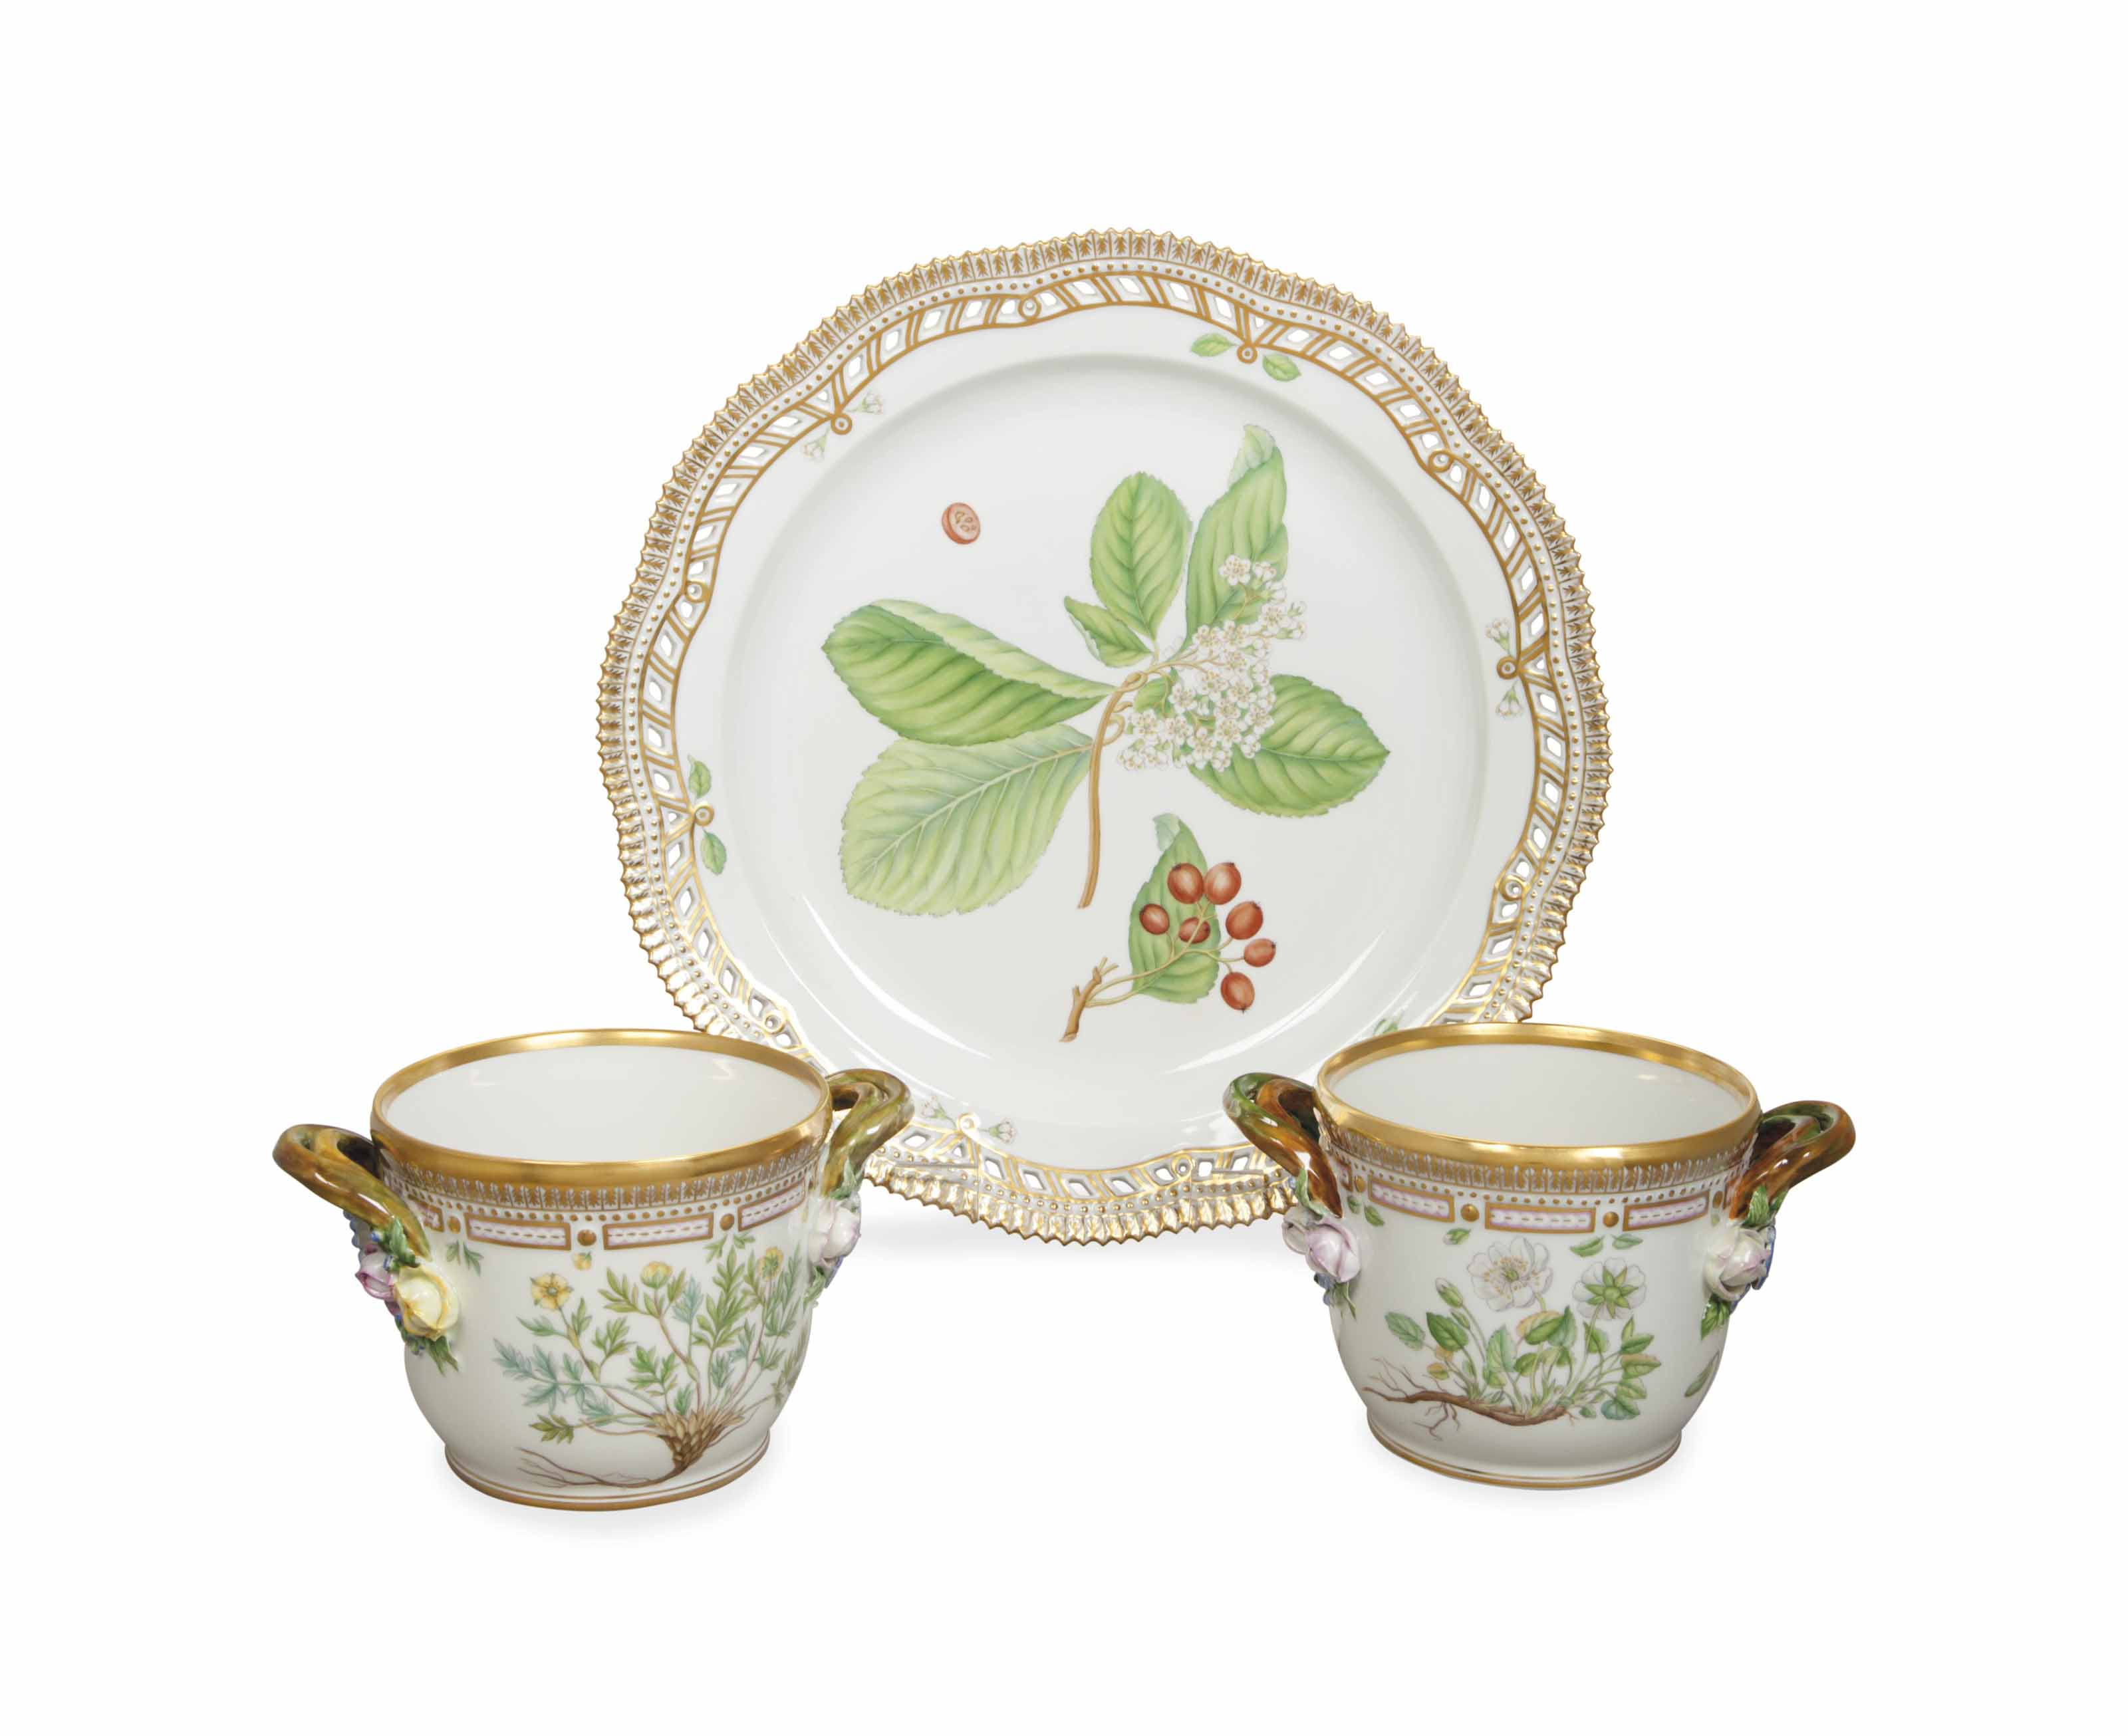 A DANISH PORCELAIN CHARGER AND